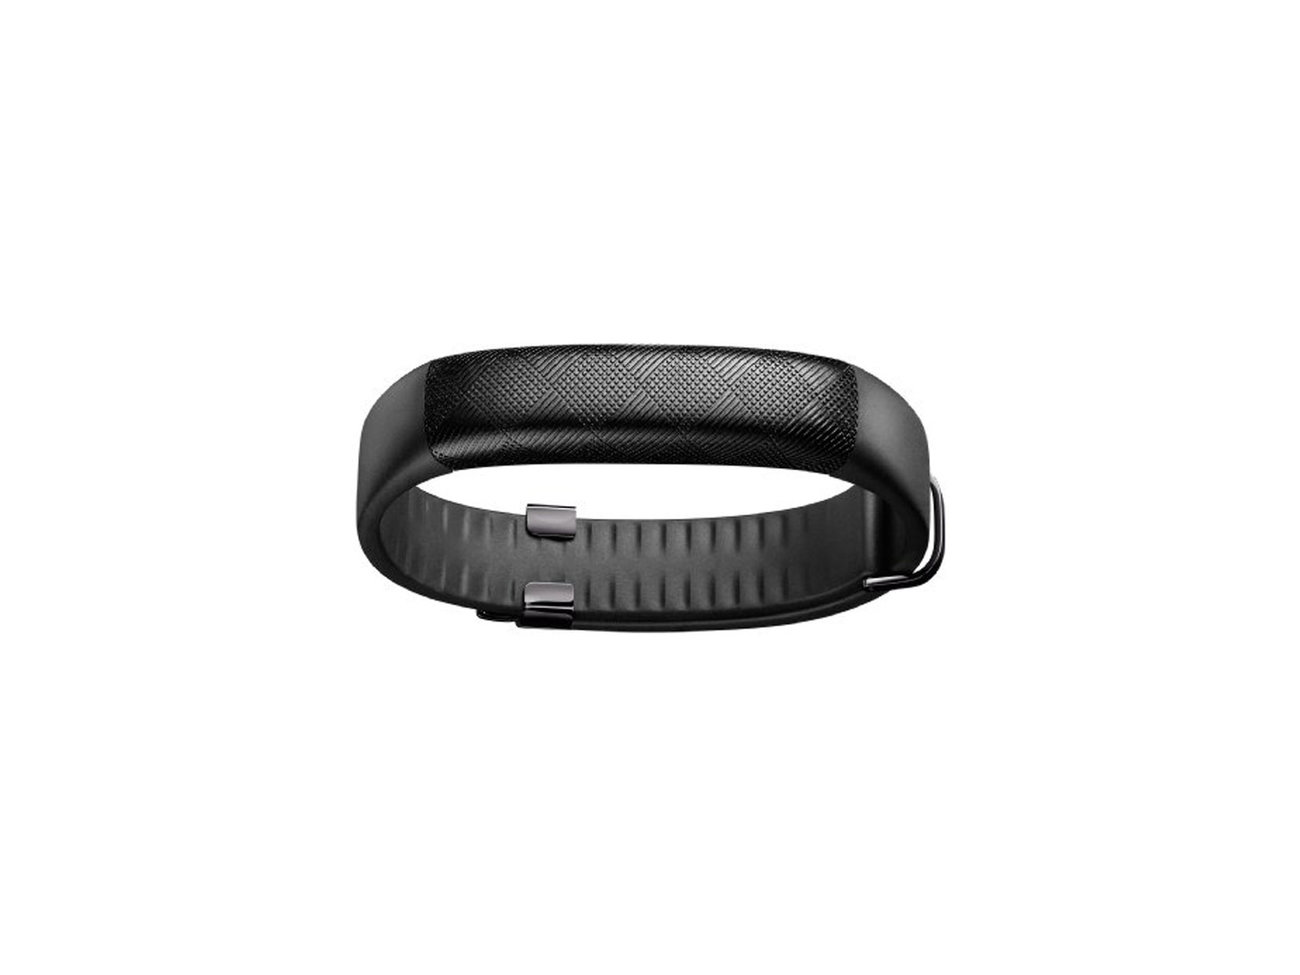 UP2-Jawbone-Activity-Tracker-amazon-prime-BESTSHOP1215.jpg